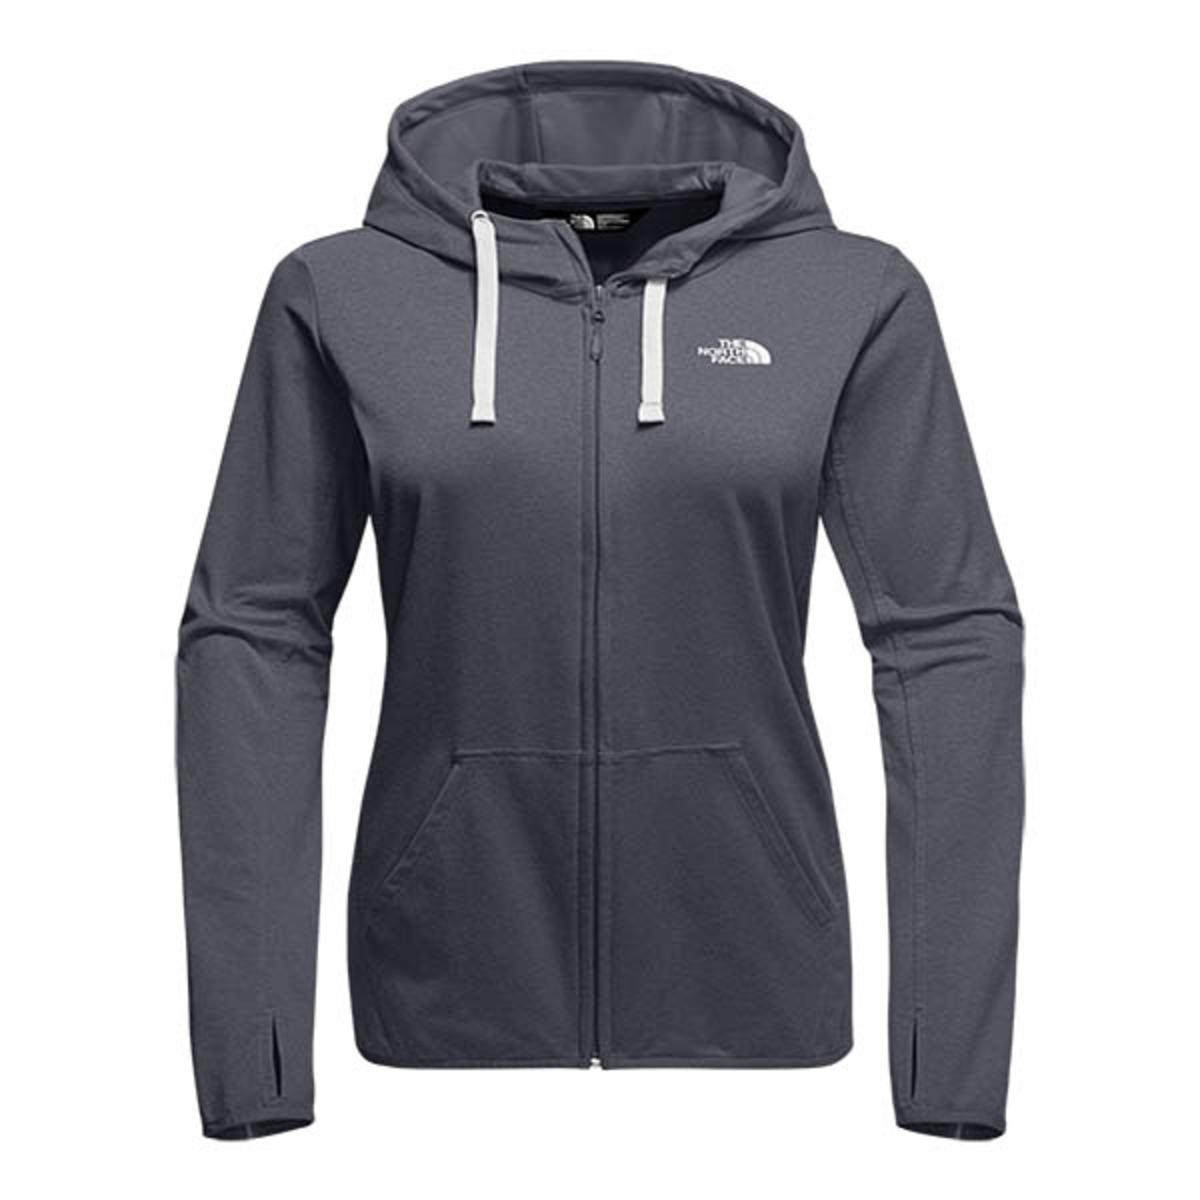 a2a2e36f8da5 The North Face Women s Fave Lite LFC Full Zip Hoodie - The Warming Store